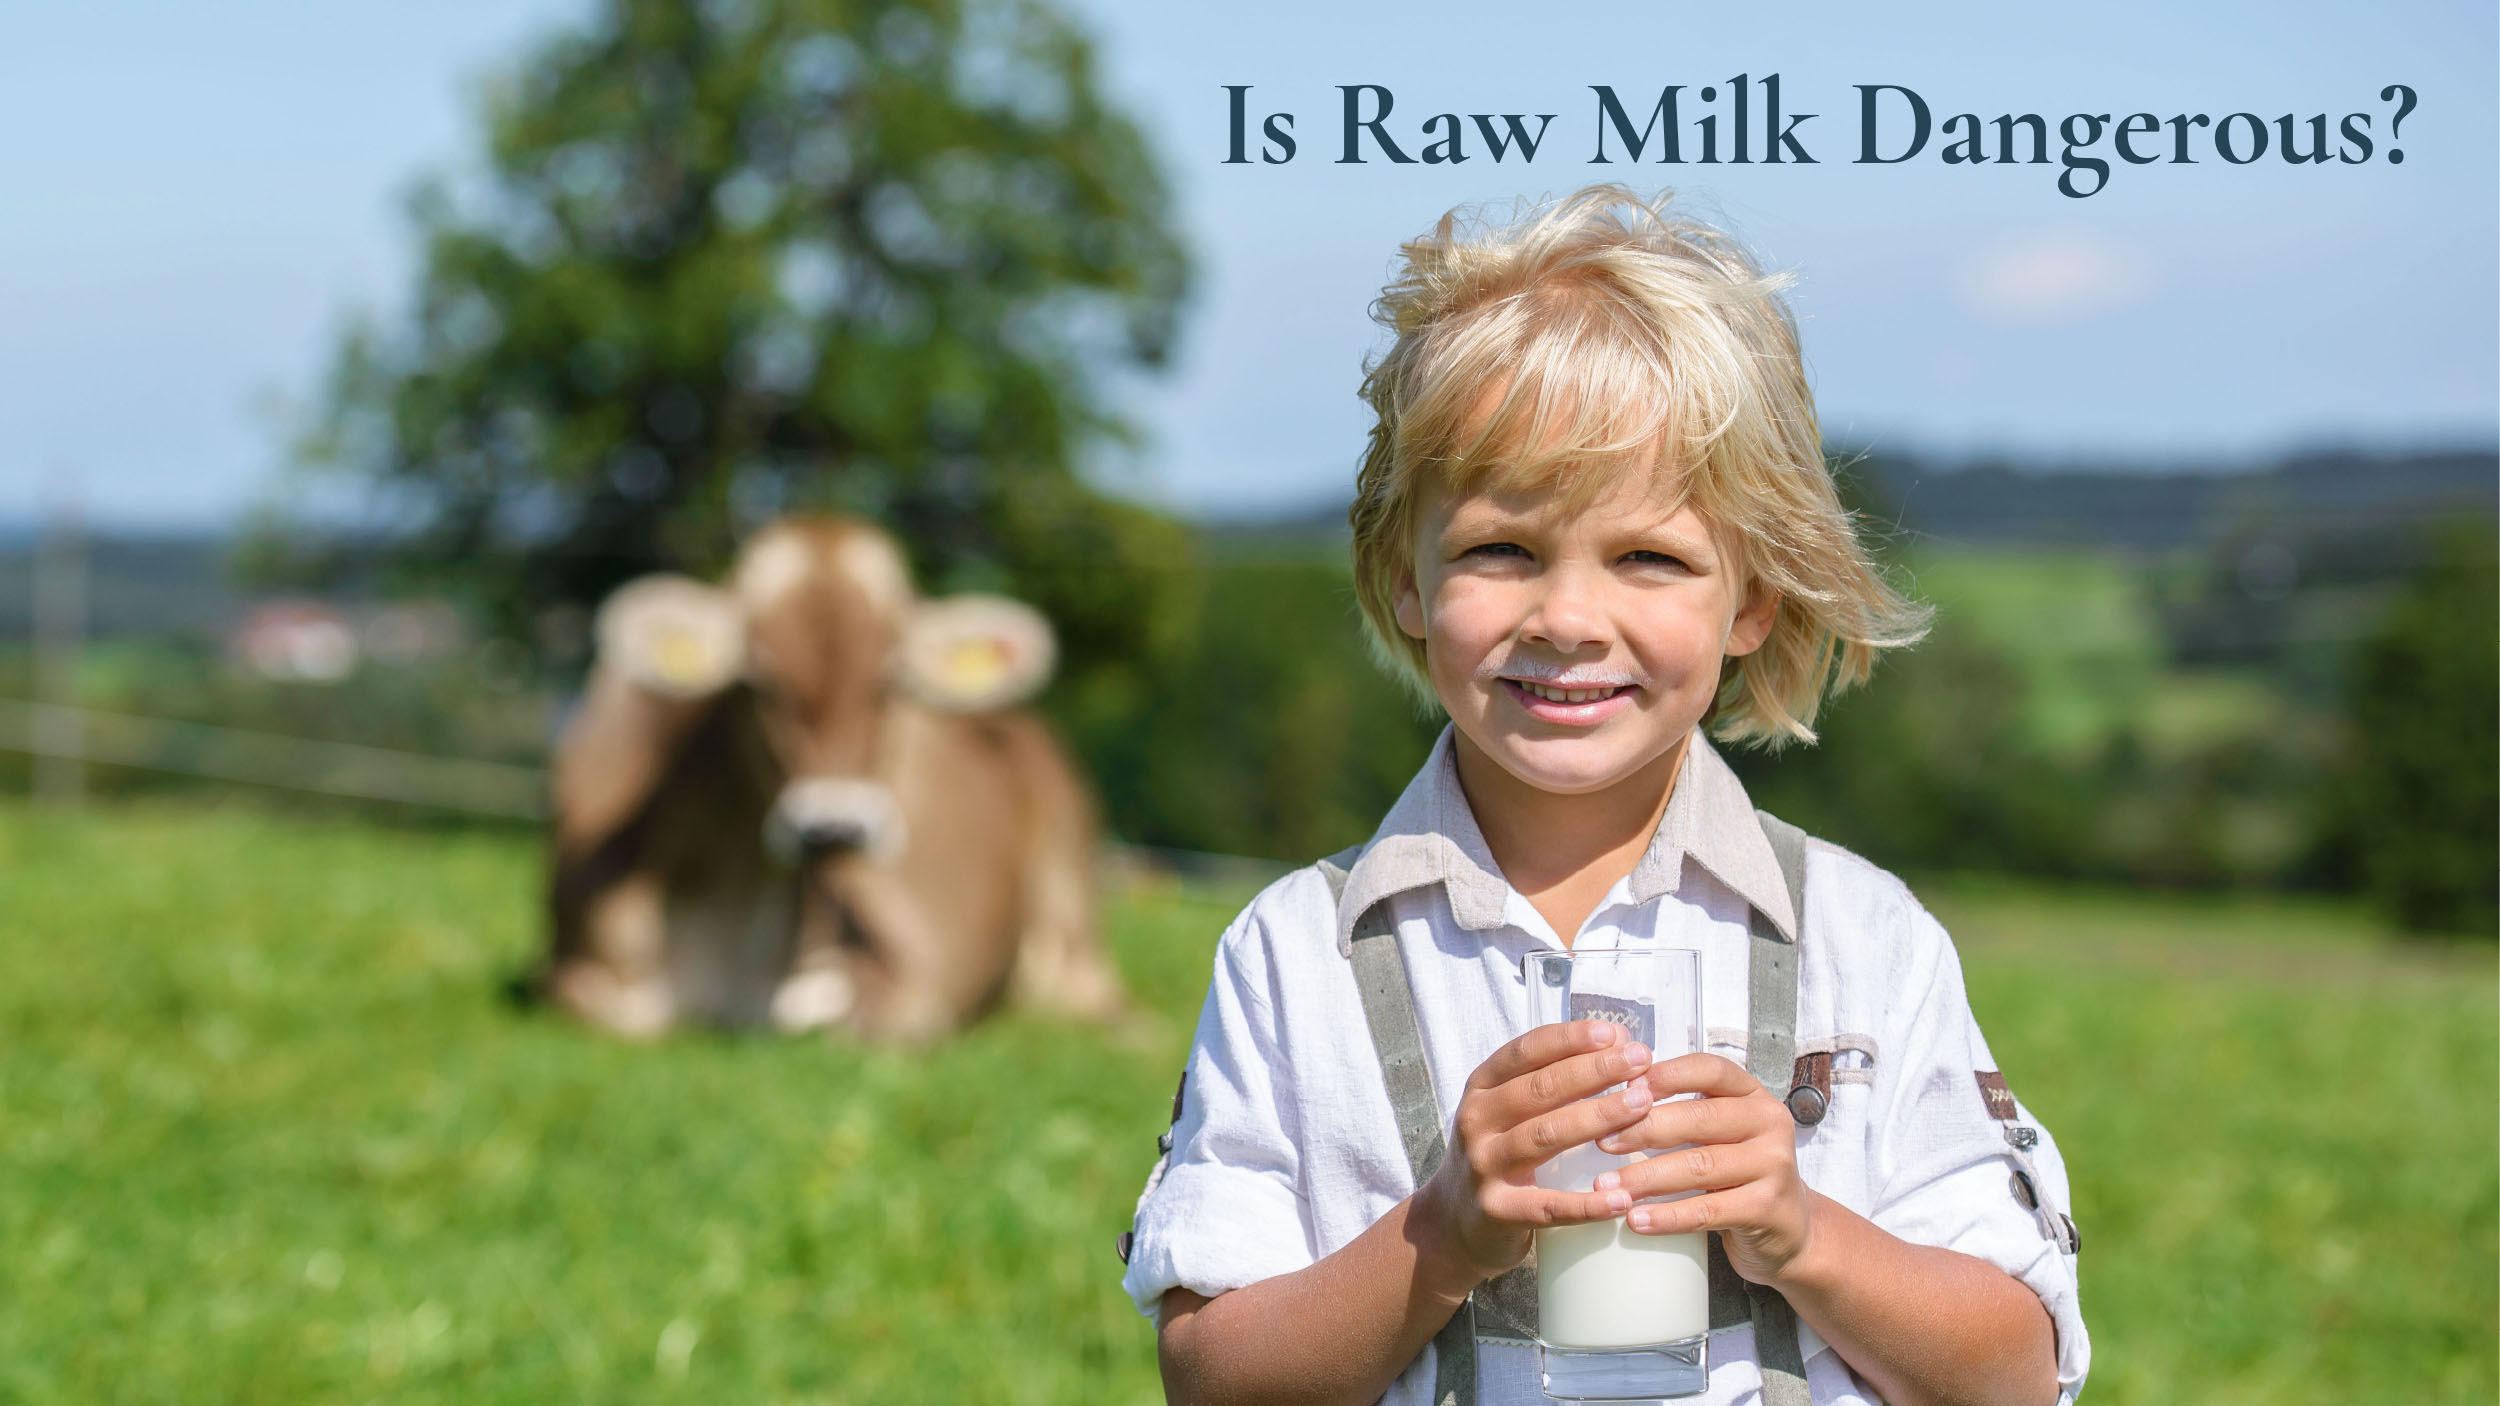 Is Raw Milk Dangerous?